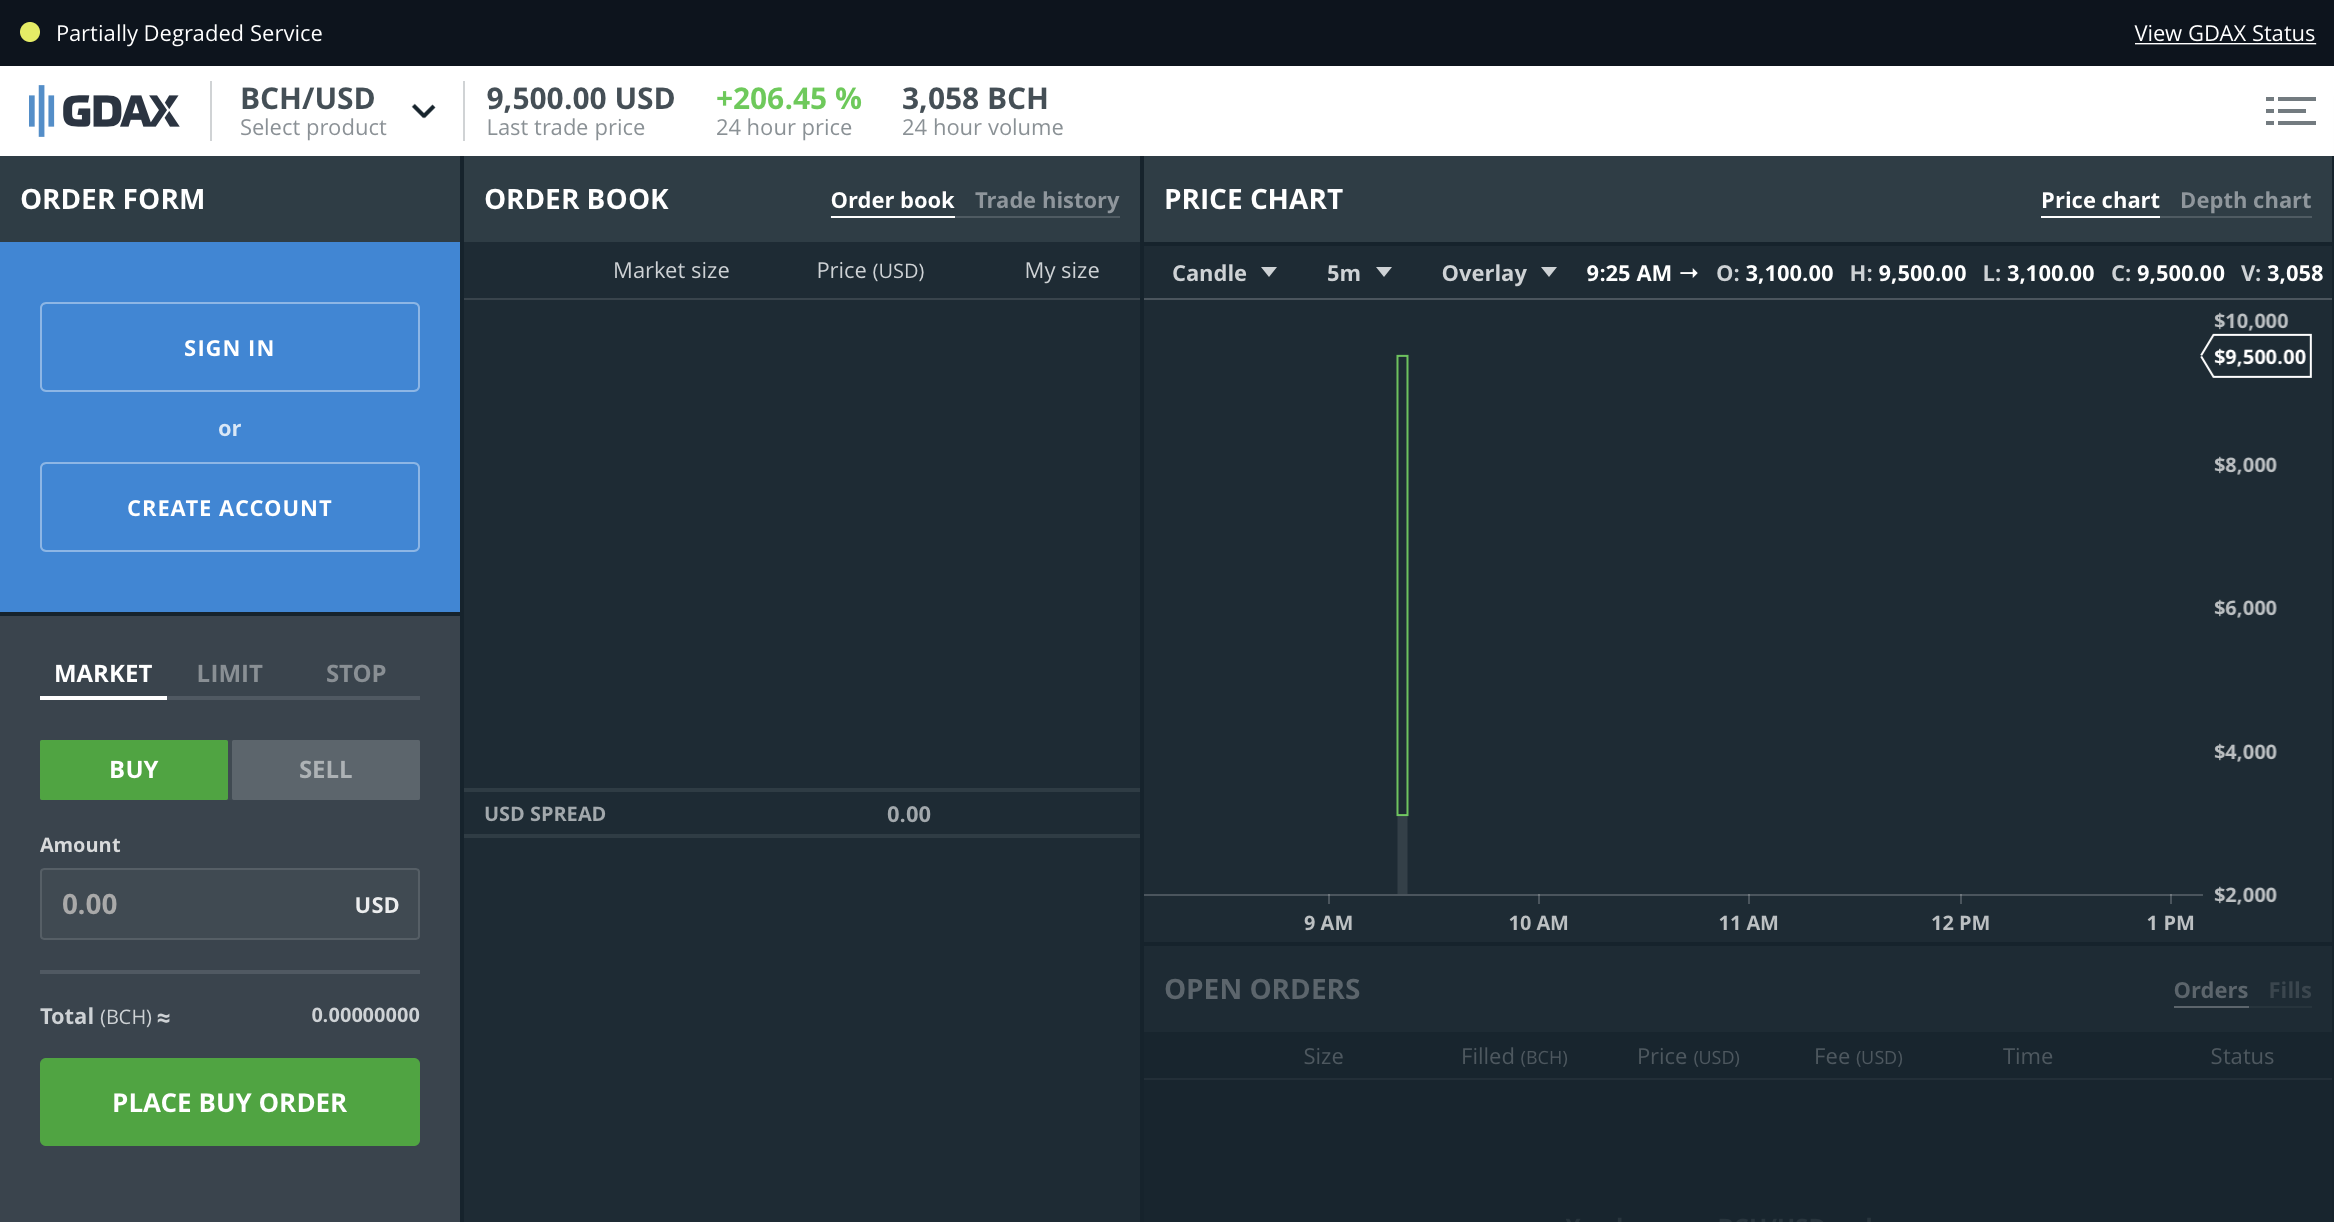 Bitcoin day trading strategies on gdax